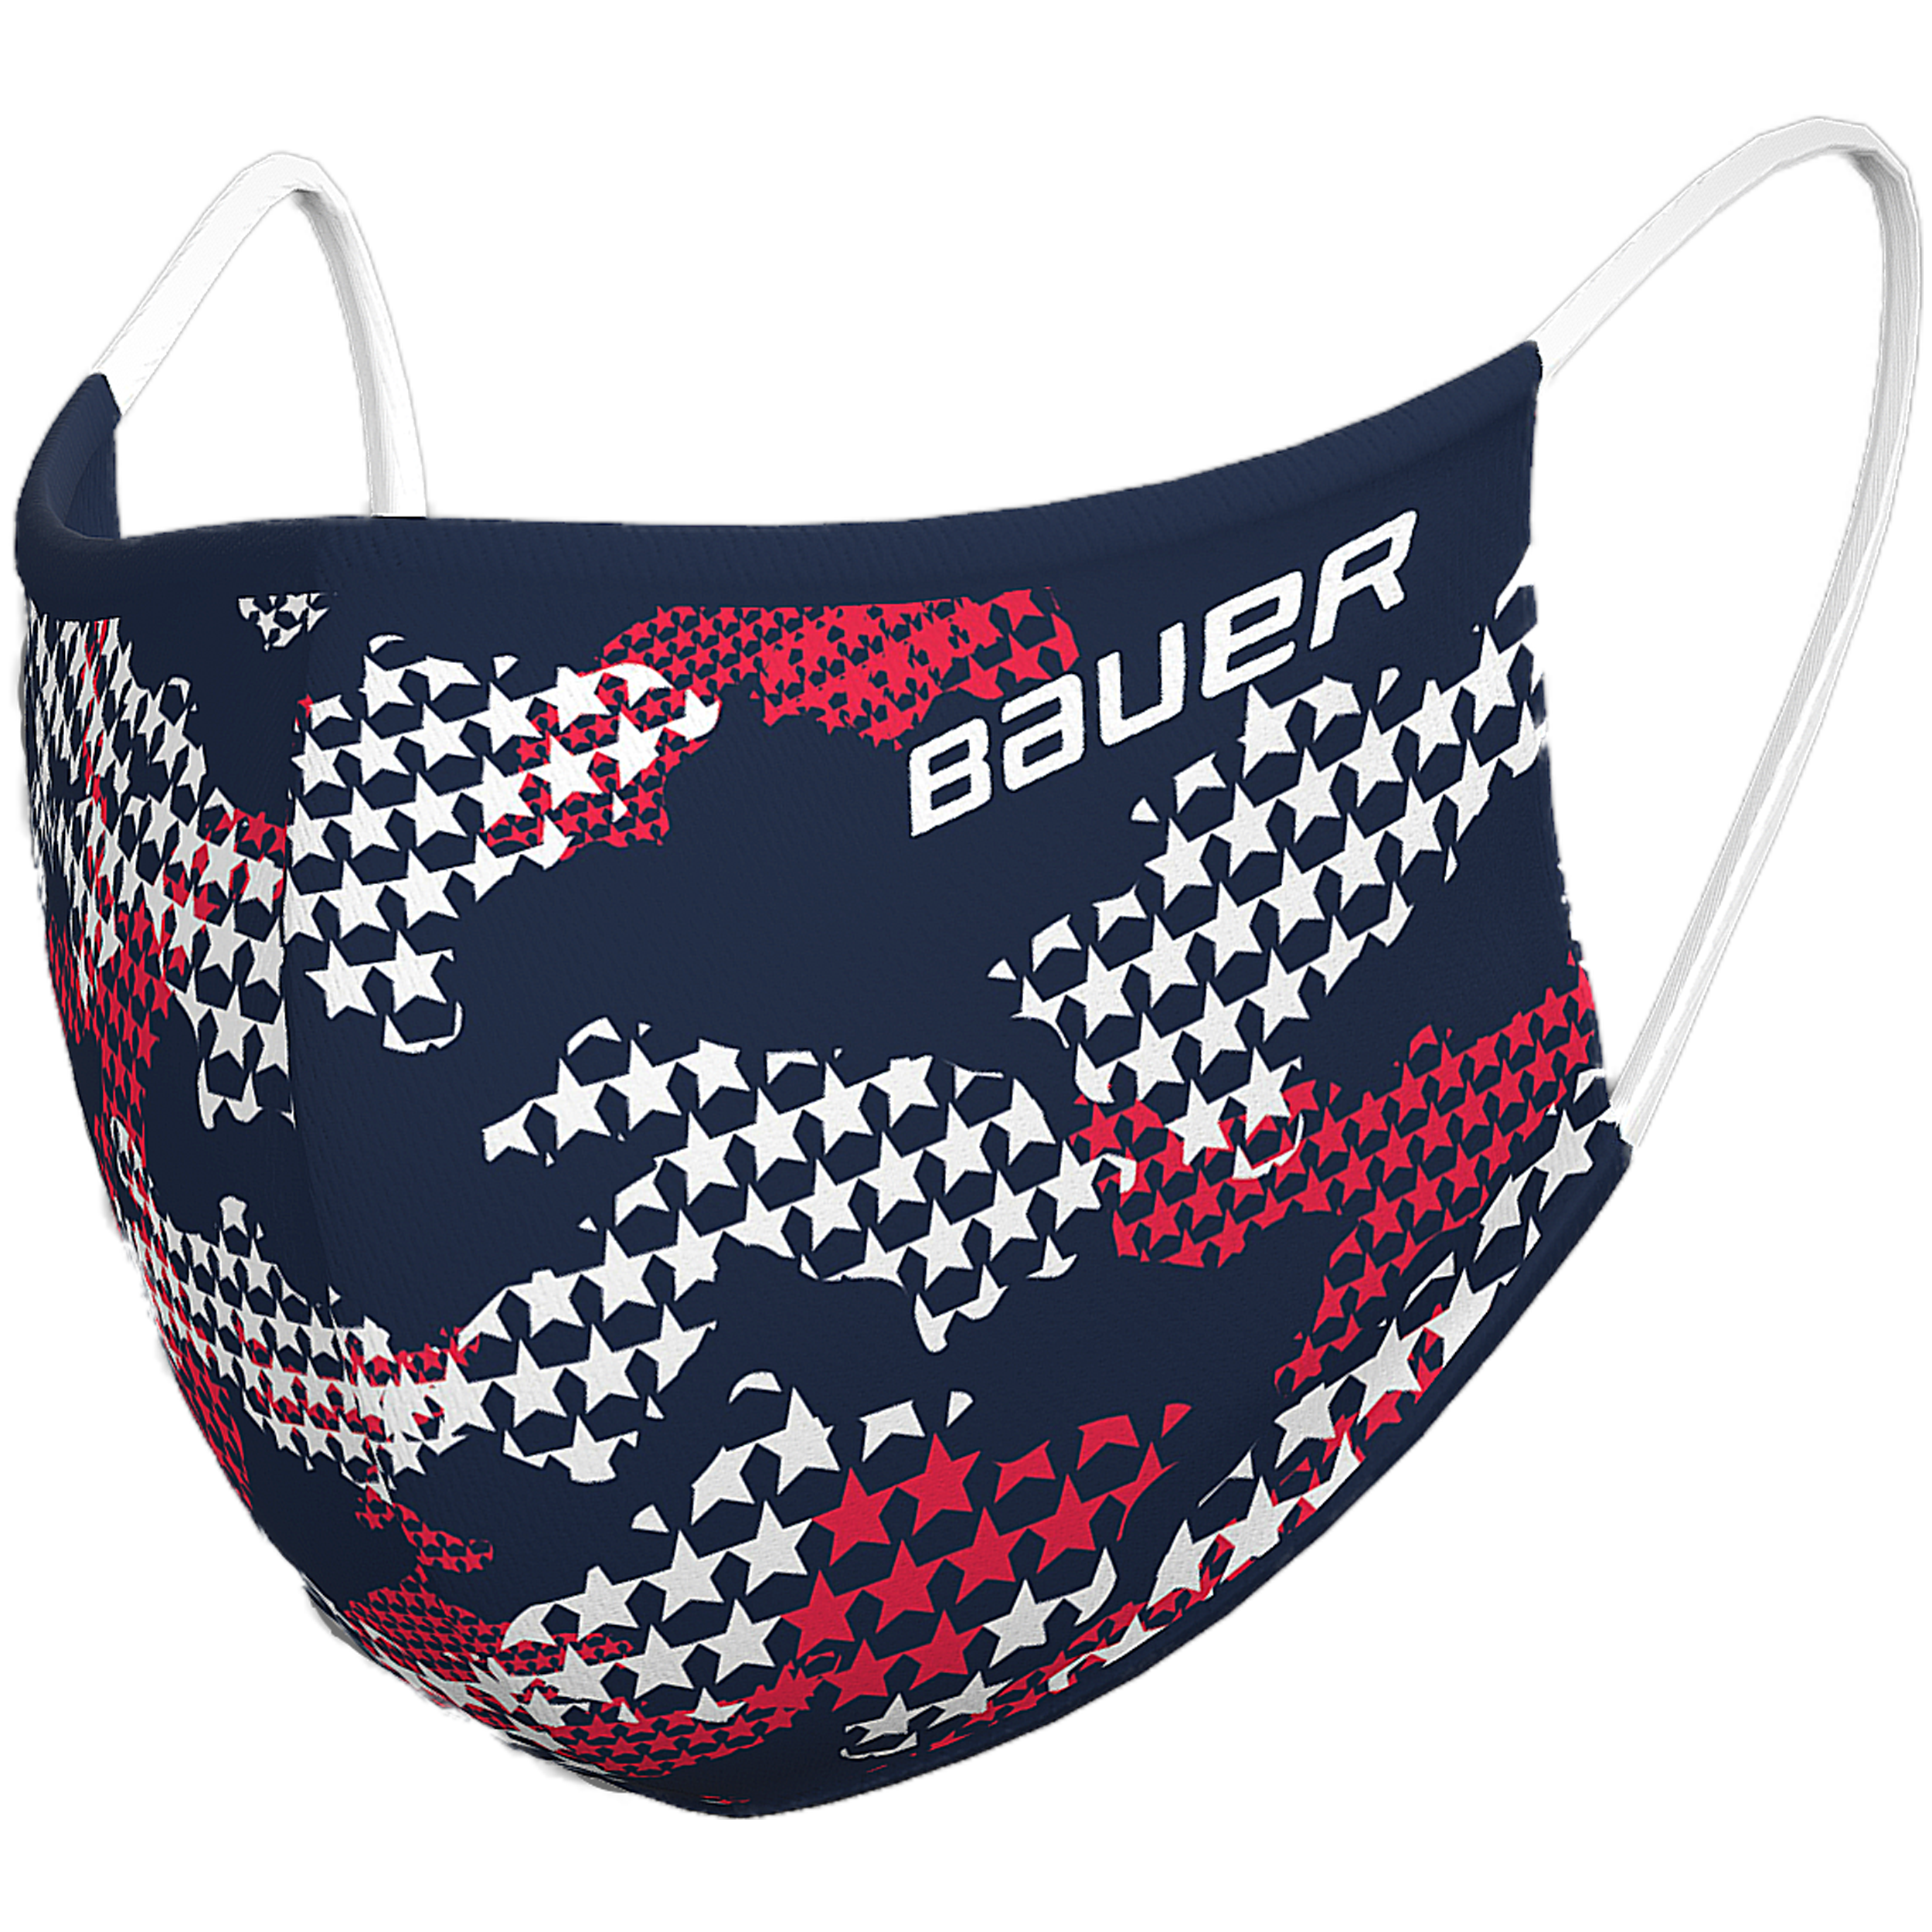 Bauer Reversible Fabric Face Mask Navy/Stars